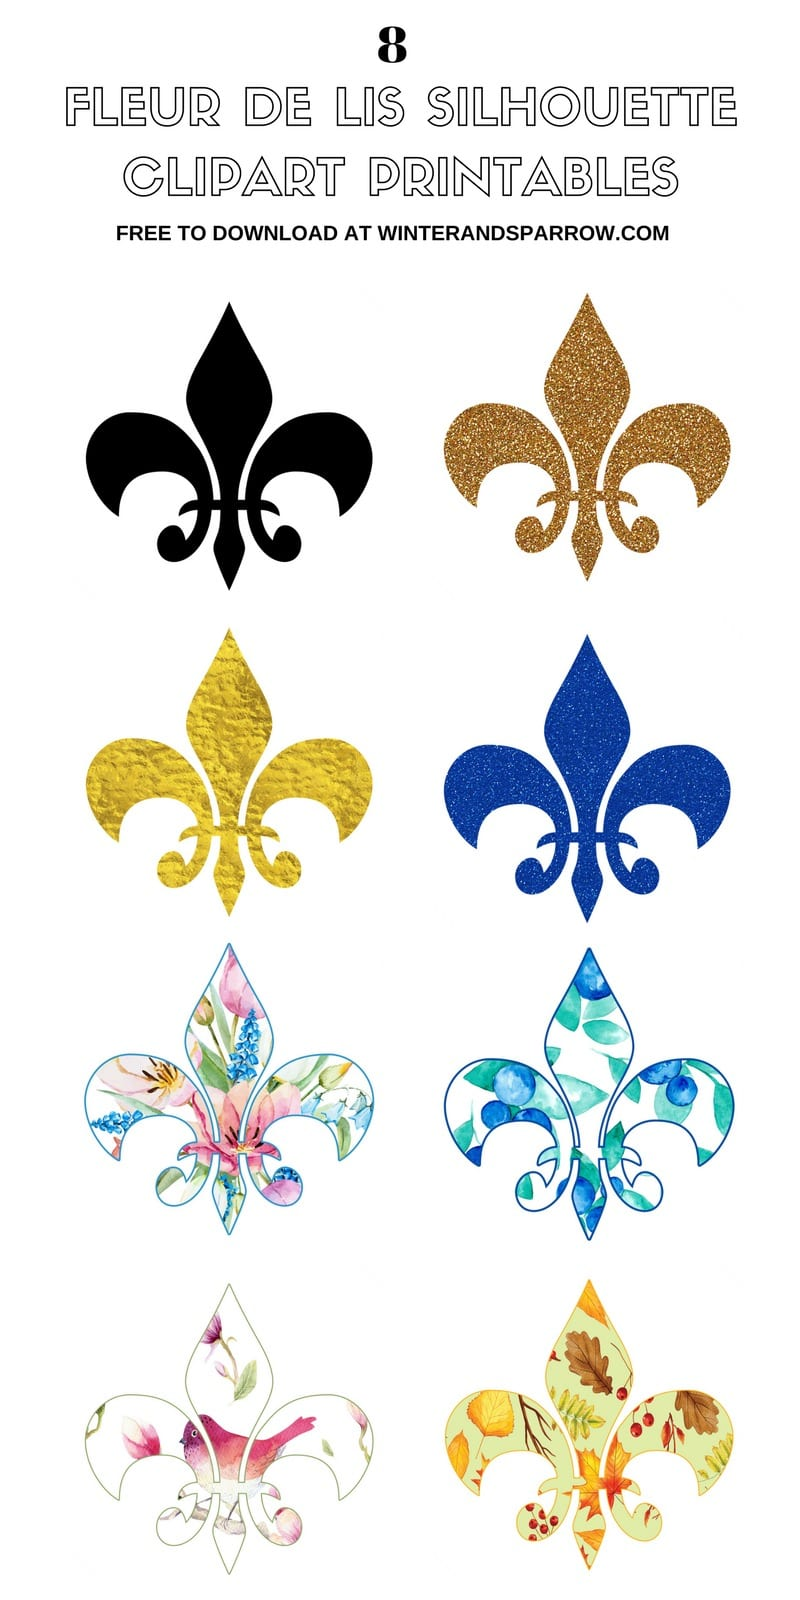 picture relating to Fleur De Lis Printable named The Background of Fleur de Lis + 8 Cost-free Fleur de Lis Silhouette